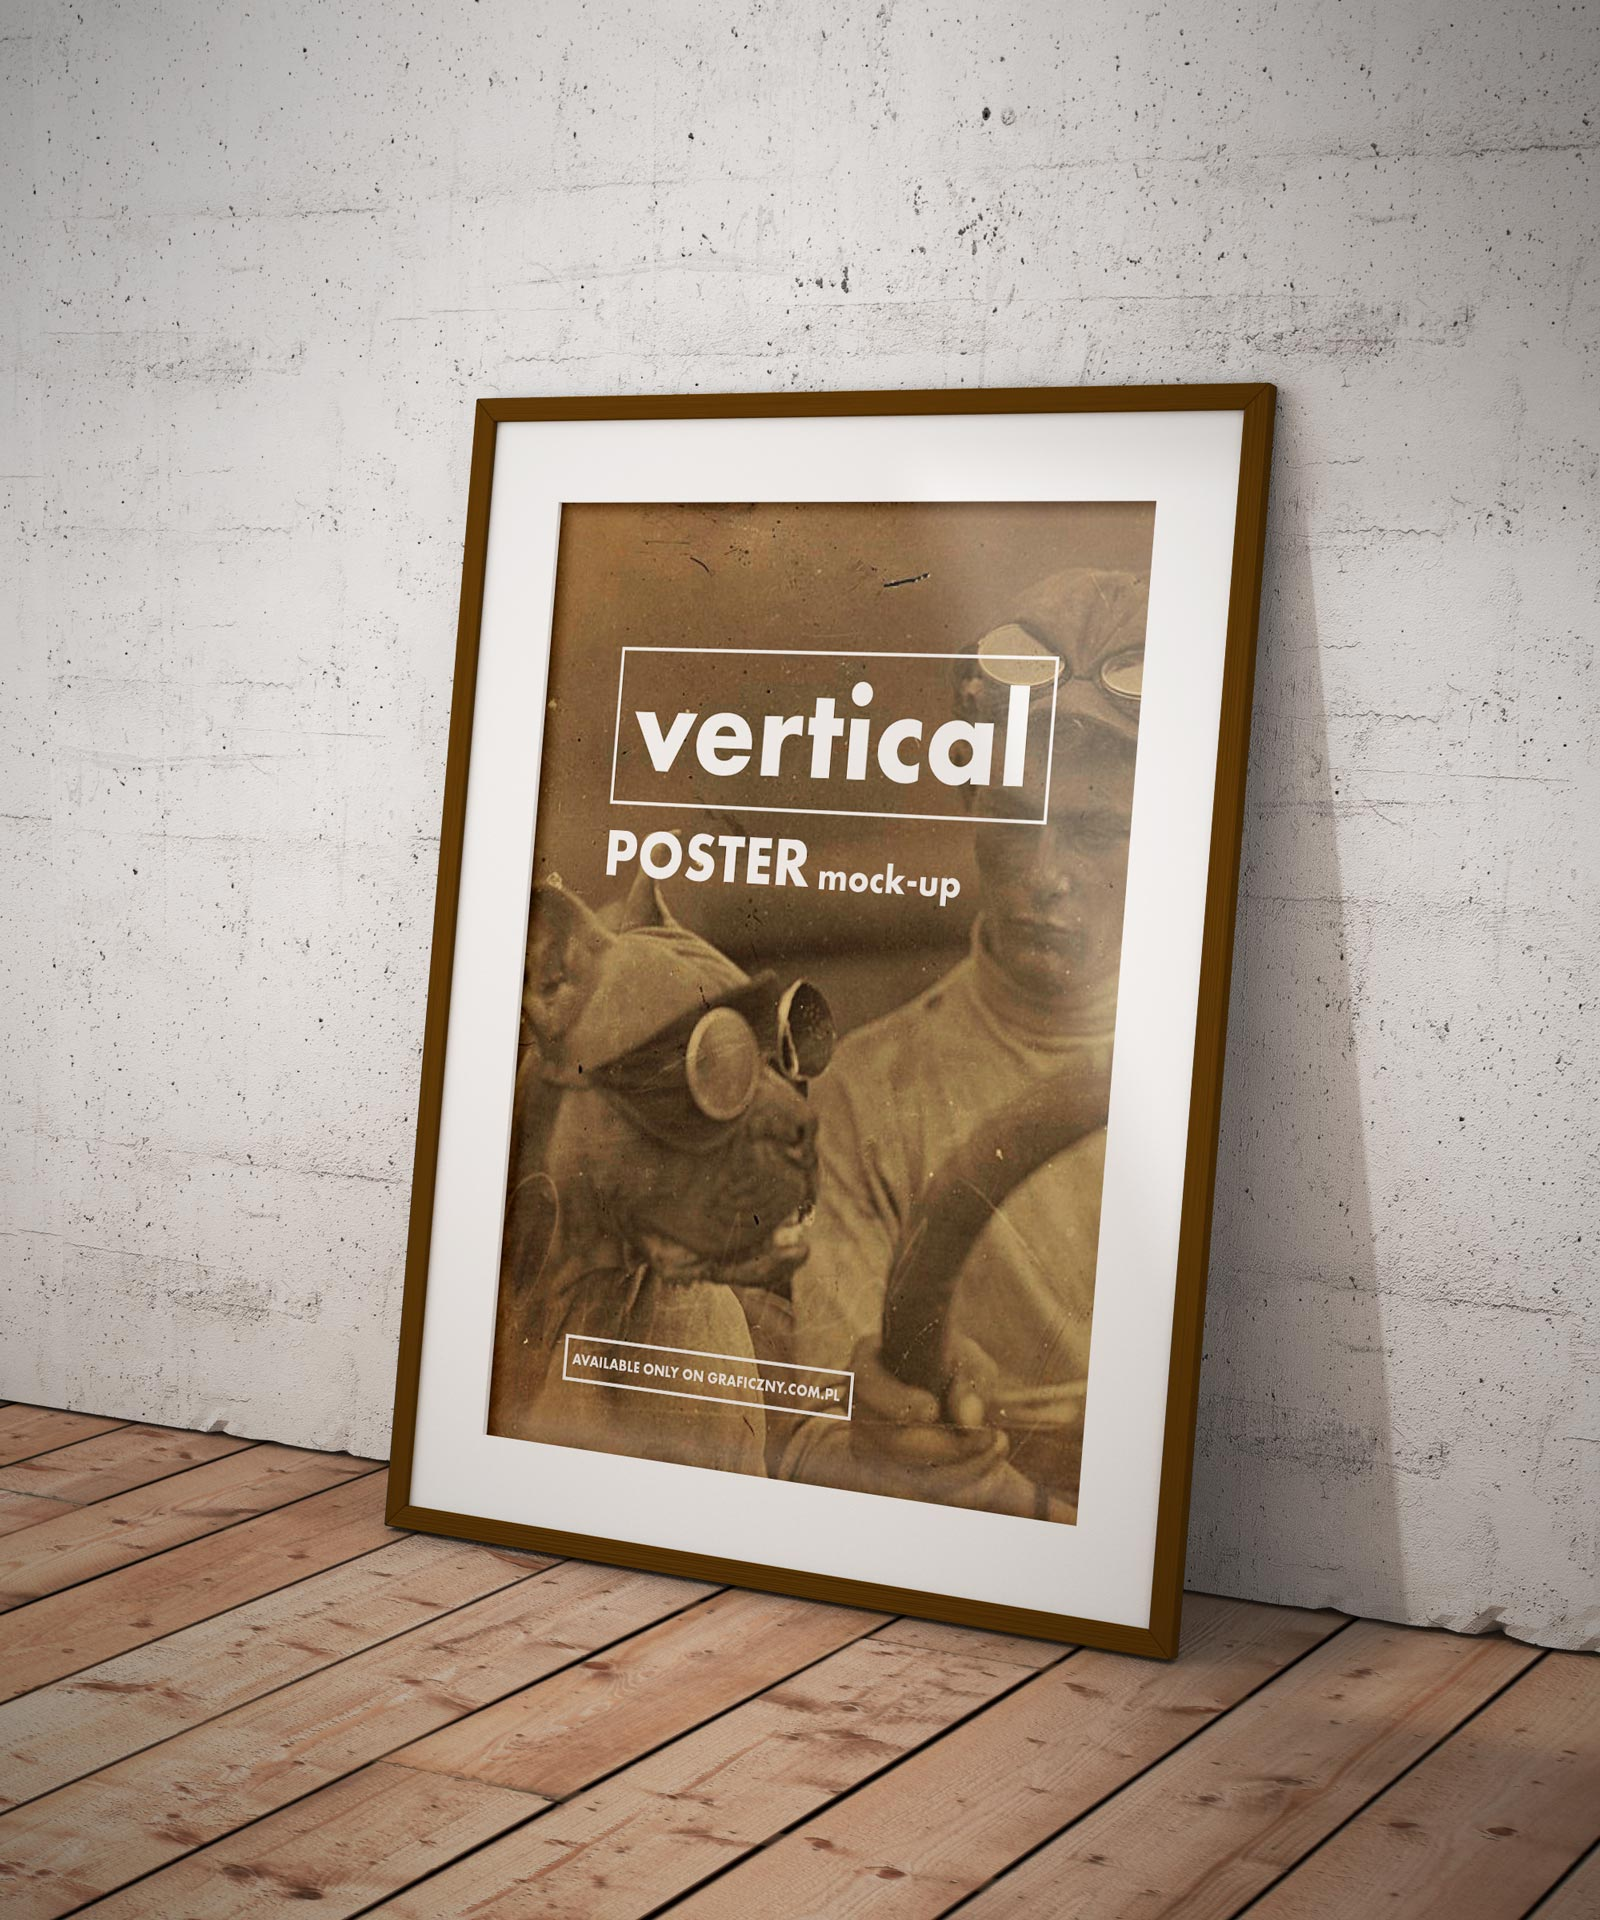 Free-Vertical-Photo-Frame-Mockup-PSD-Files